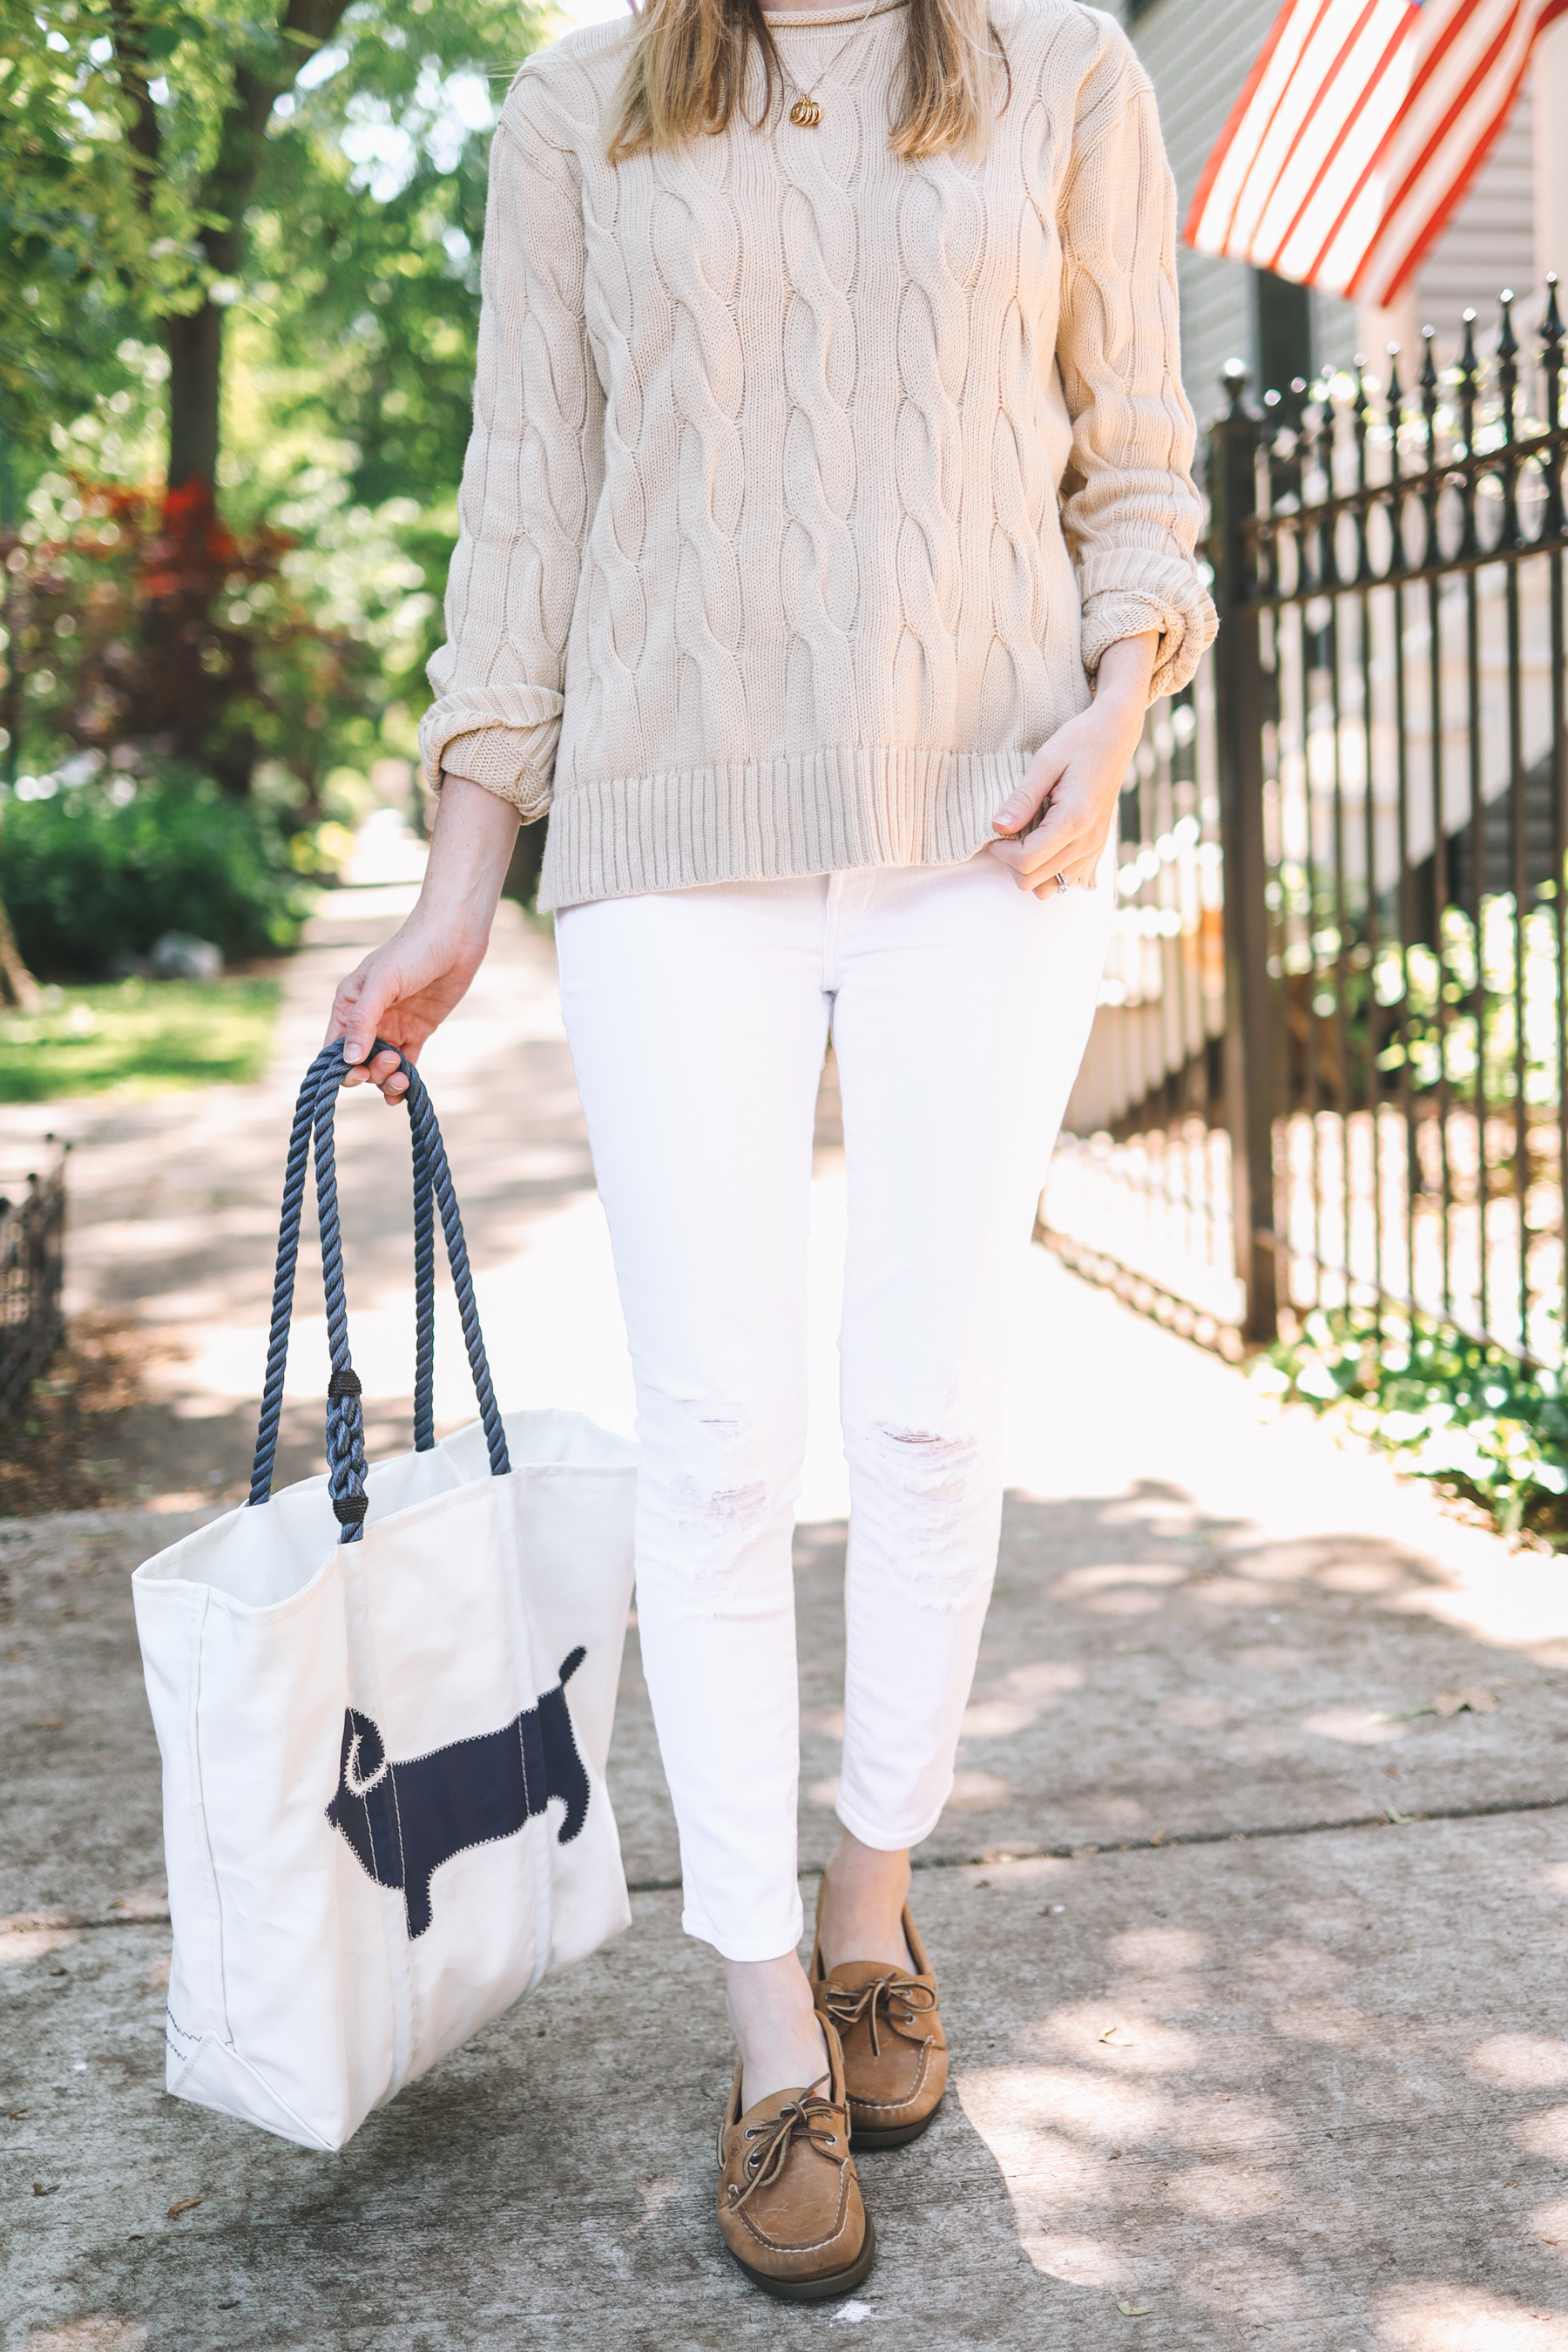 Dachshund Tote Bag - Sea Bags / Ralph Lauren Boxy Cable Knit Sweater / Sperry Topsiders / Maternity Jeans / Stamped Initial Necklace